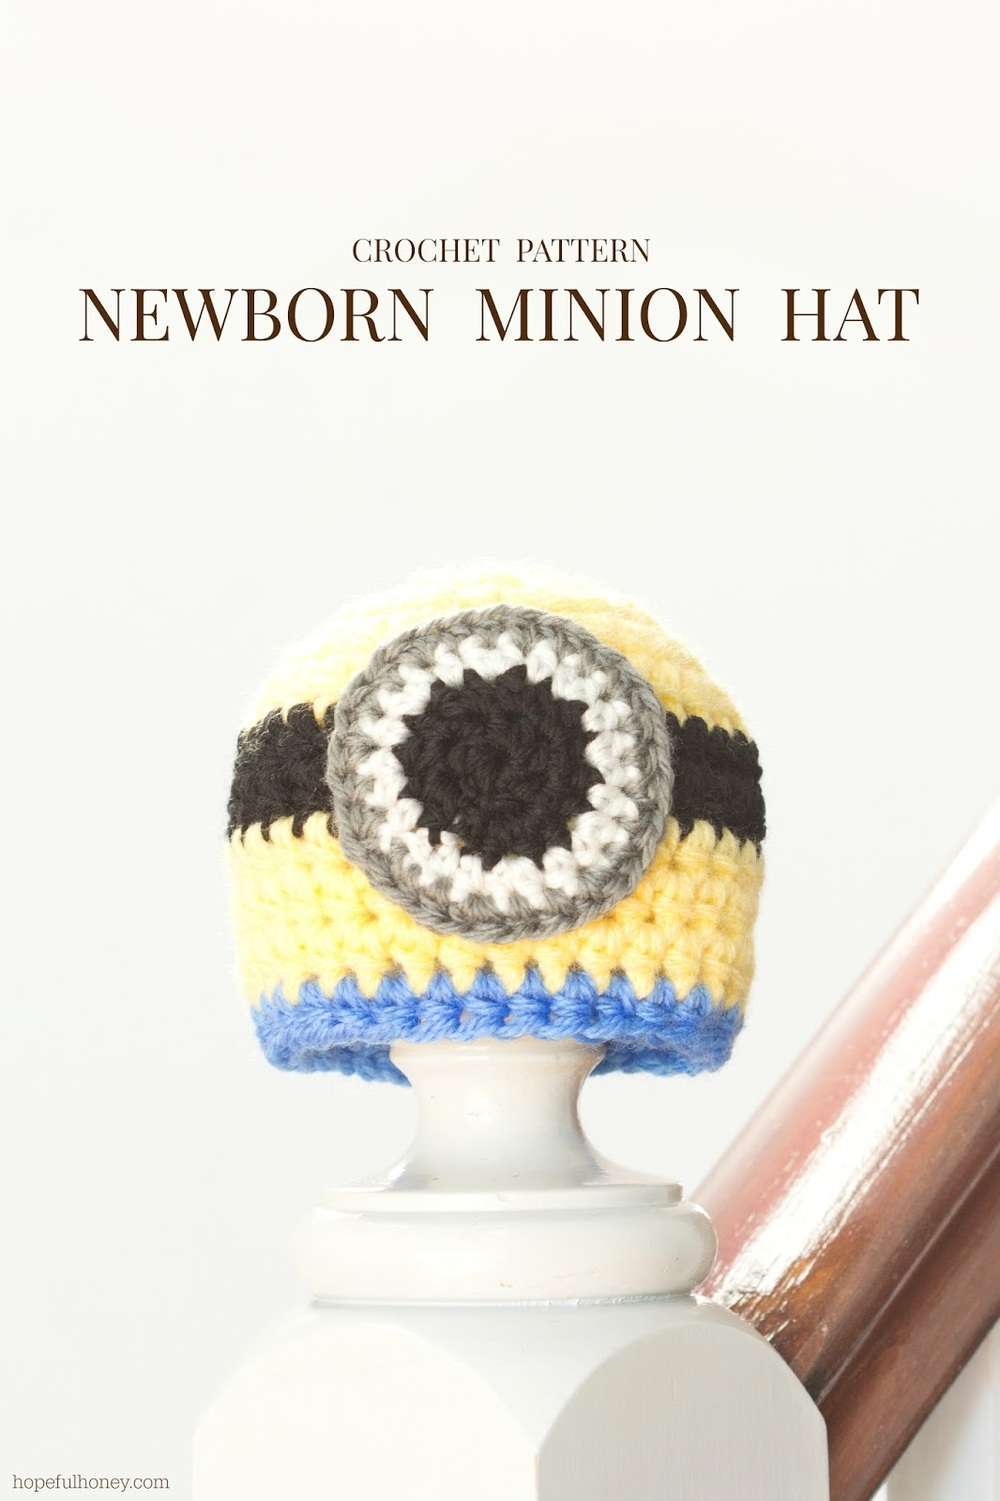 Crochet Baby Minion Hat Pattern : Baby Minion Crochet Hat Pattern FaveCrafts.com